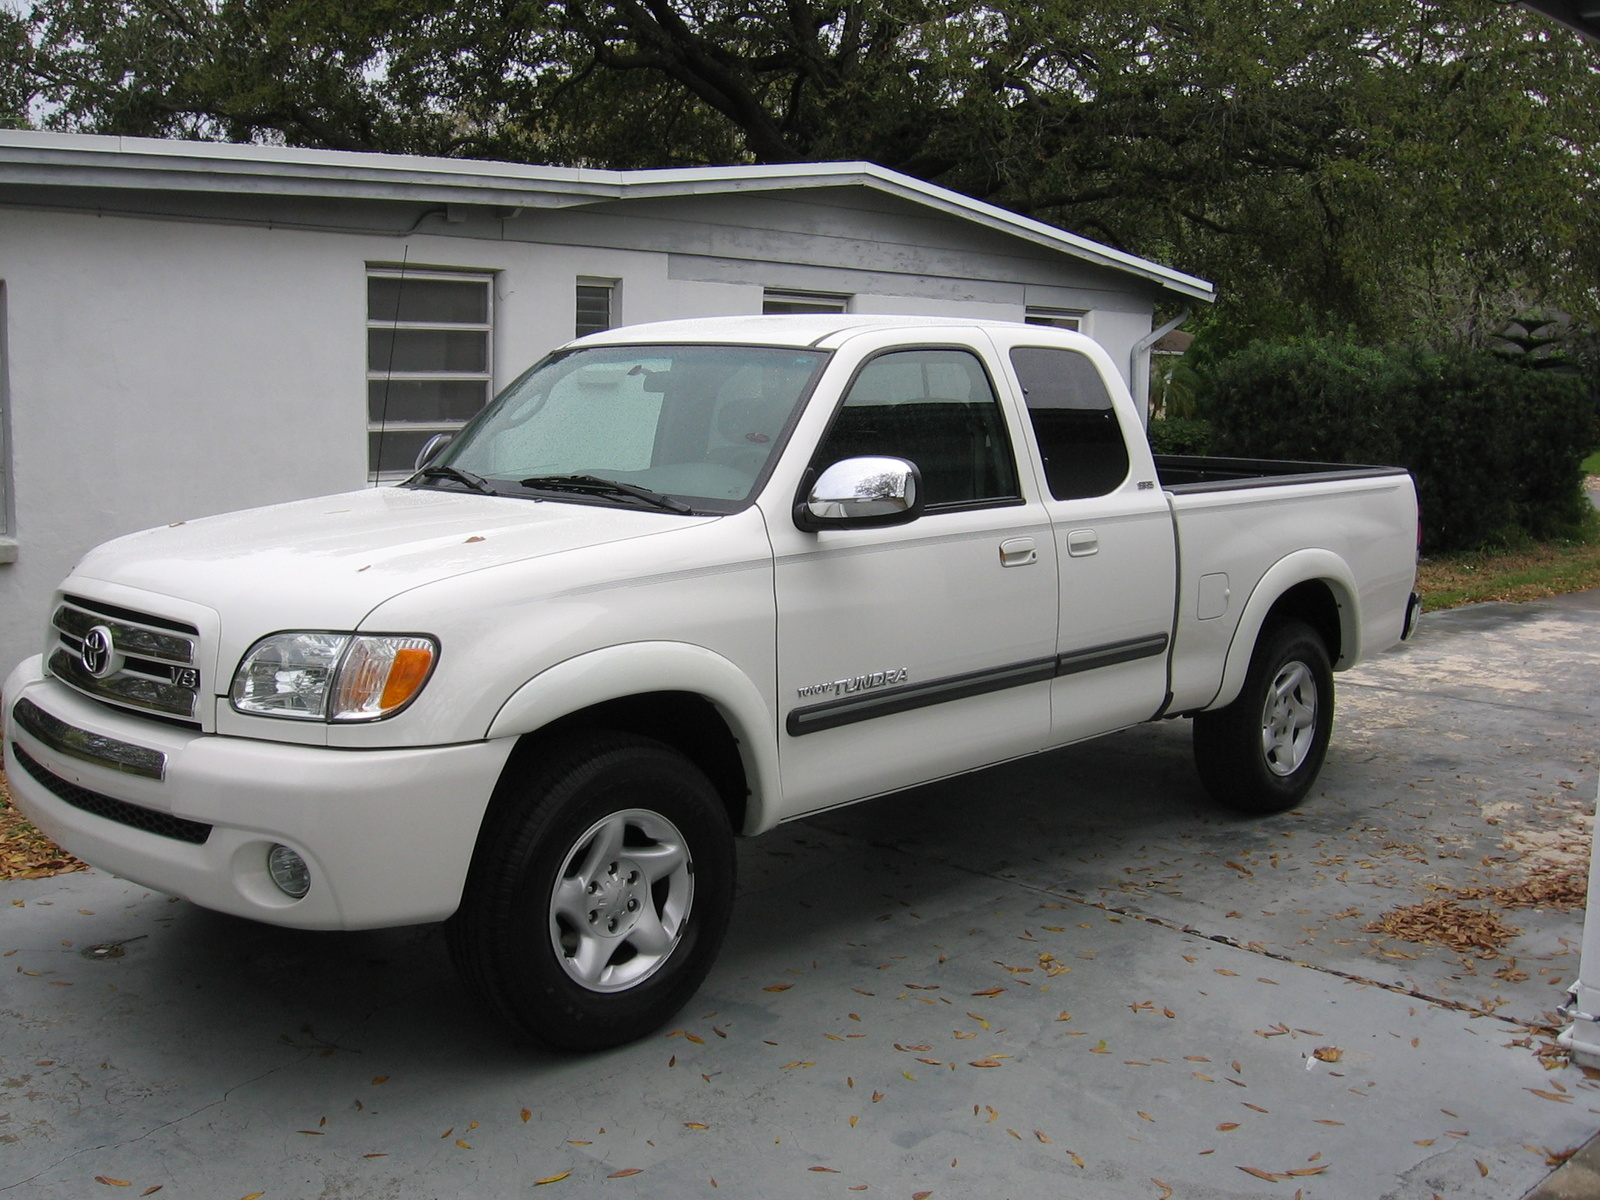 Picture of 2003 Toyota Tundra 4 Dr SR5 V8 Extended Cab SB